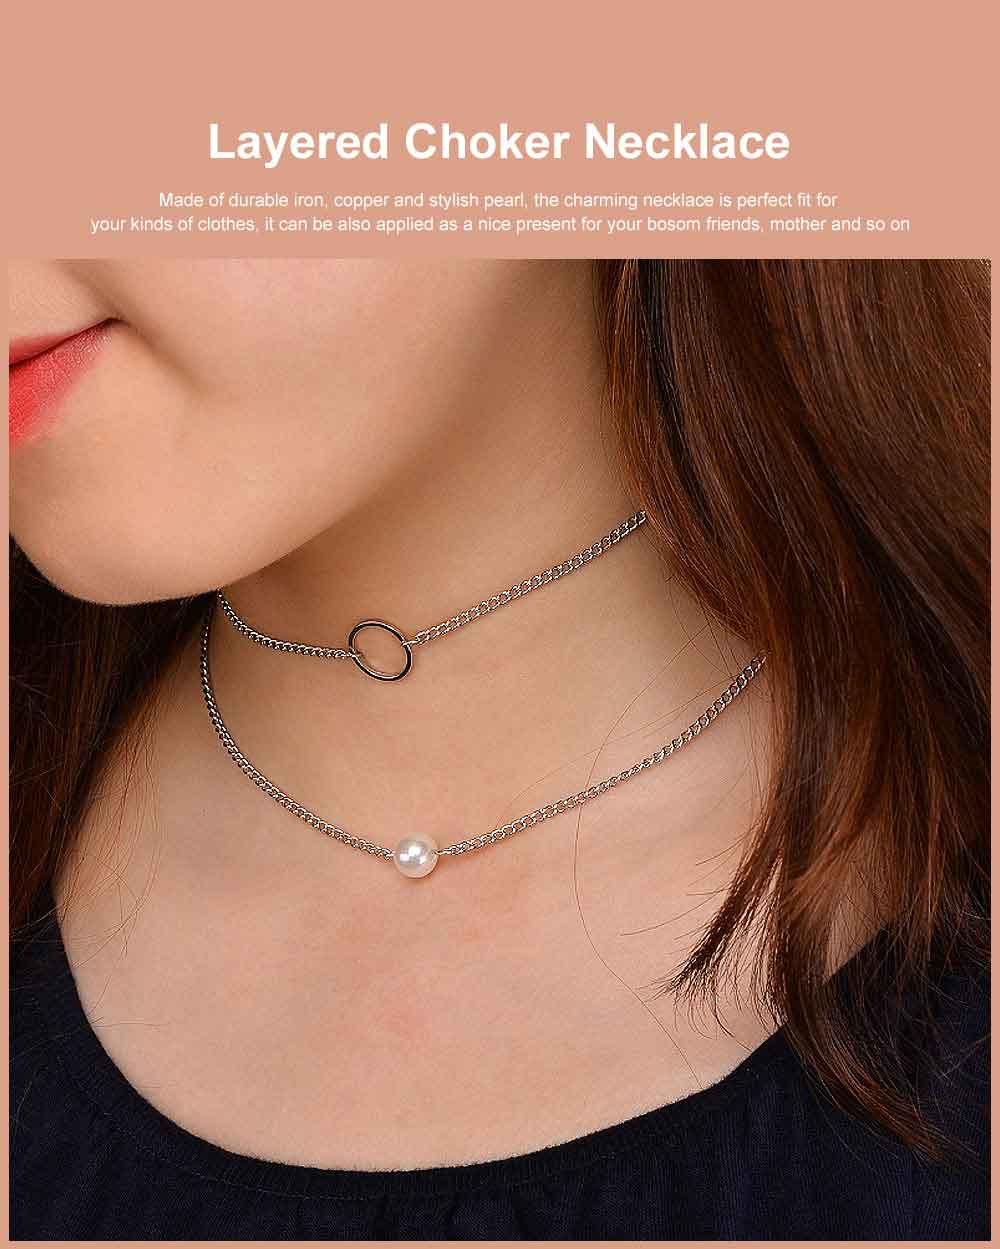 Layered Choker Necklace Pearl Pendant Necklace Double Anti-Rusty Chain Personalized Jewelry Gift for Women 0